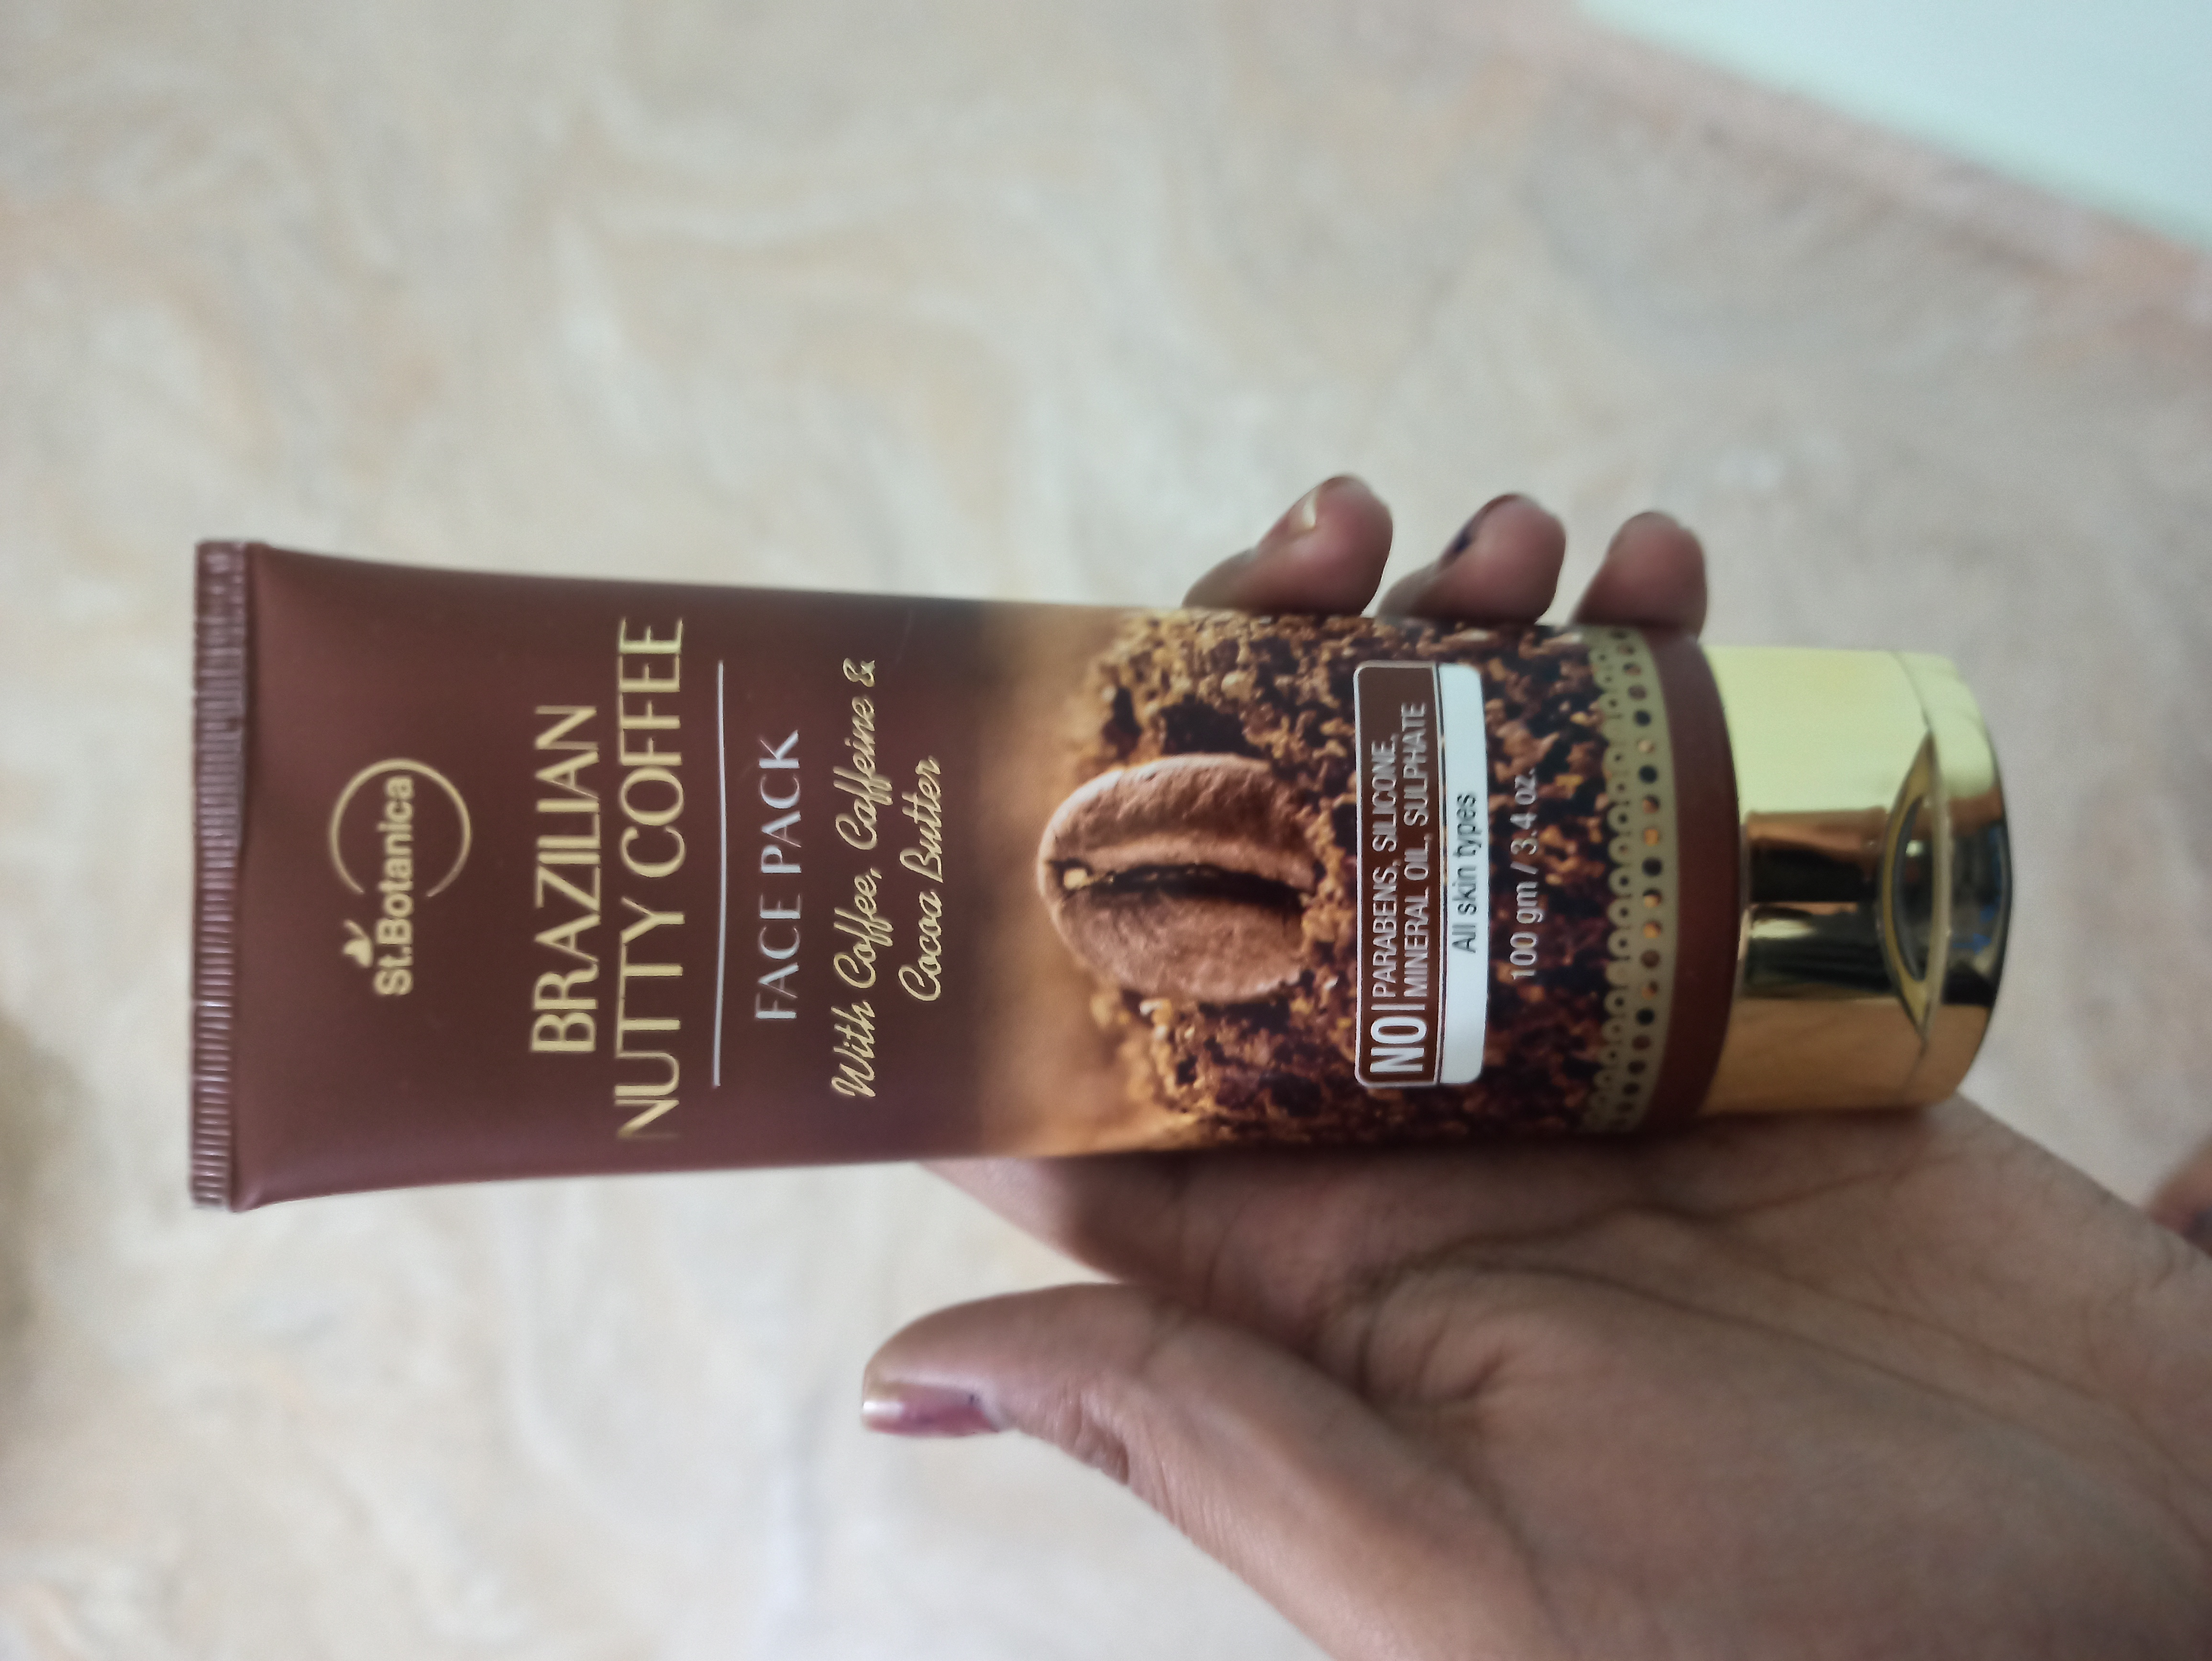 St.Botanica Brazilian Nutty Coffee Face Mask-Loving this face mask-By rishitashivhare